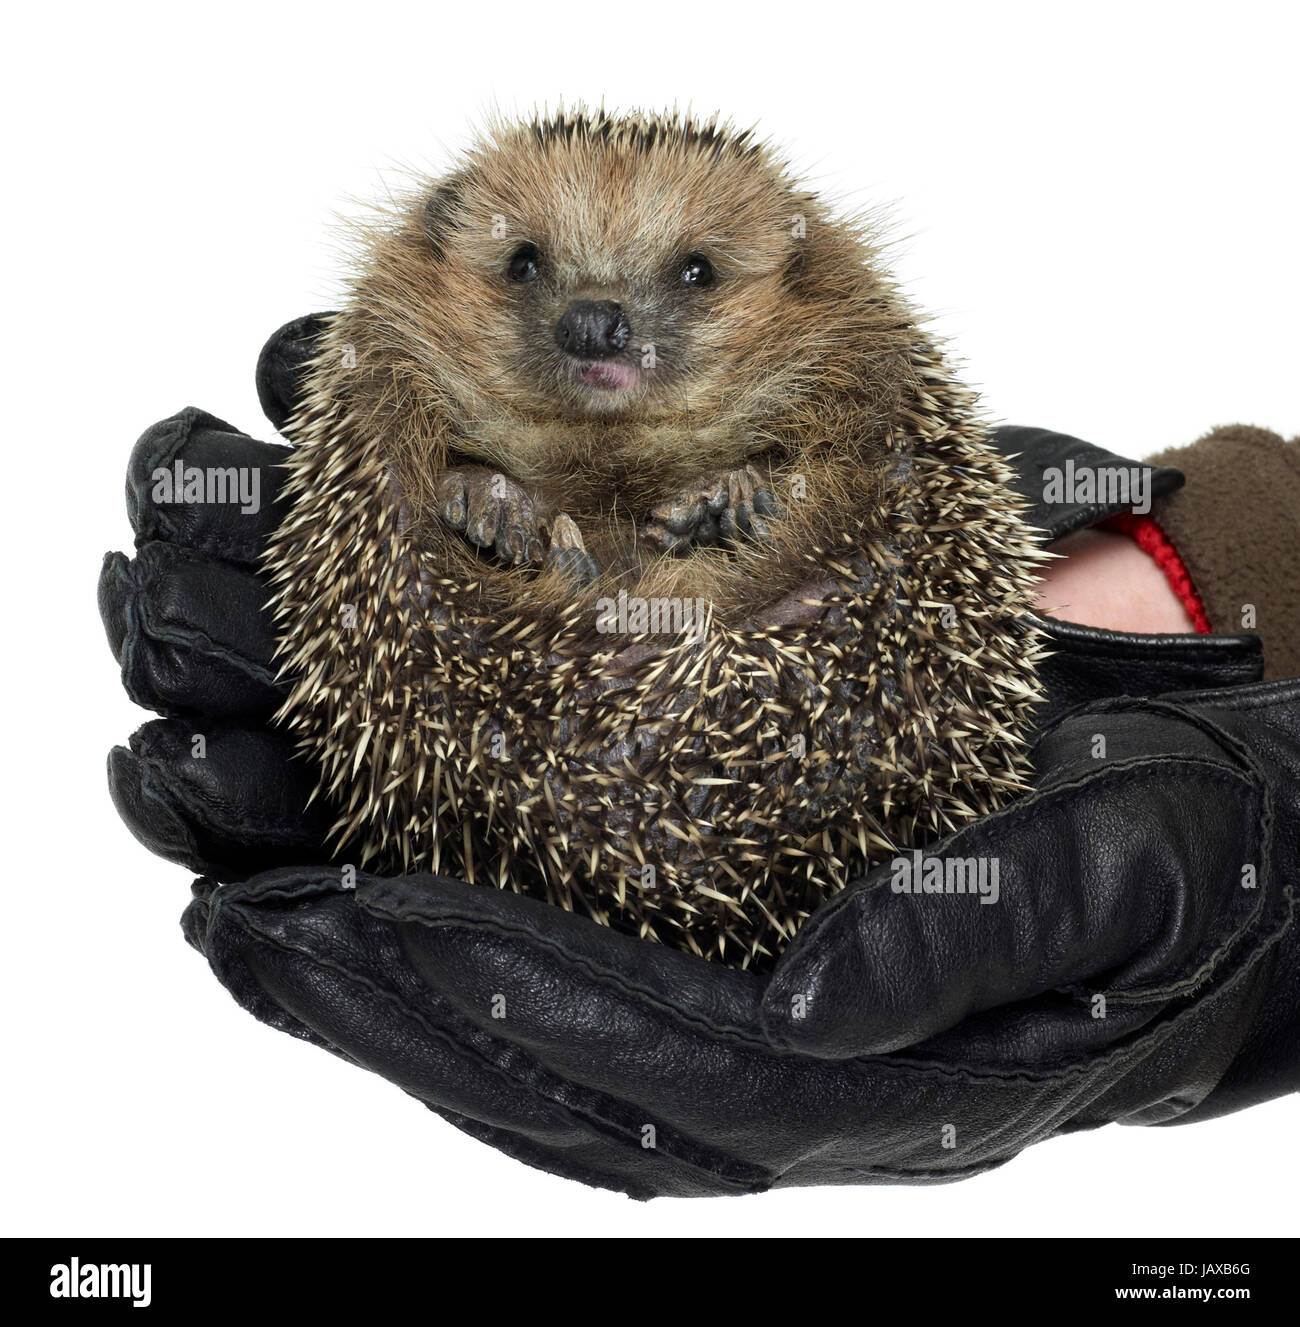 holding a rolled-up hedgehog with black leather gloves. Studio shot in white back - Stock Image